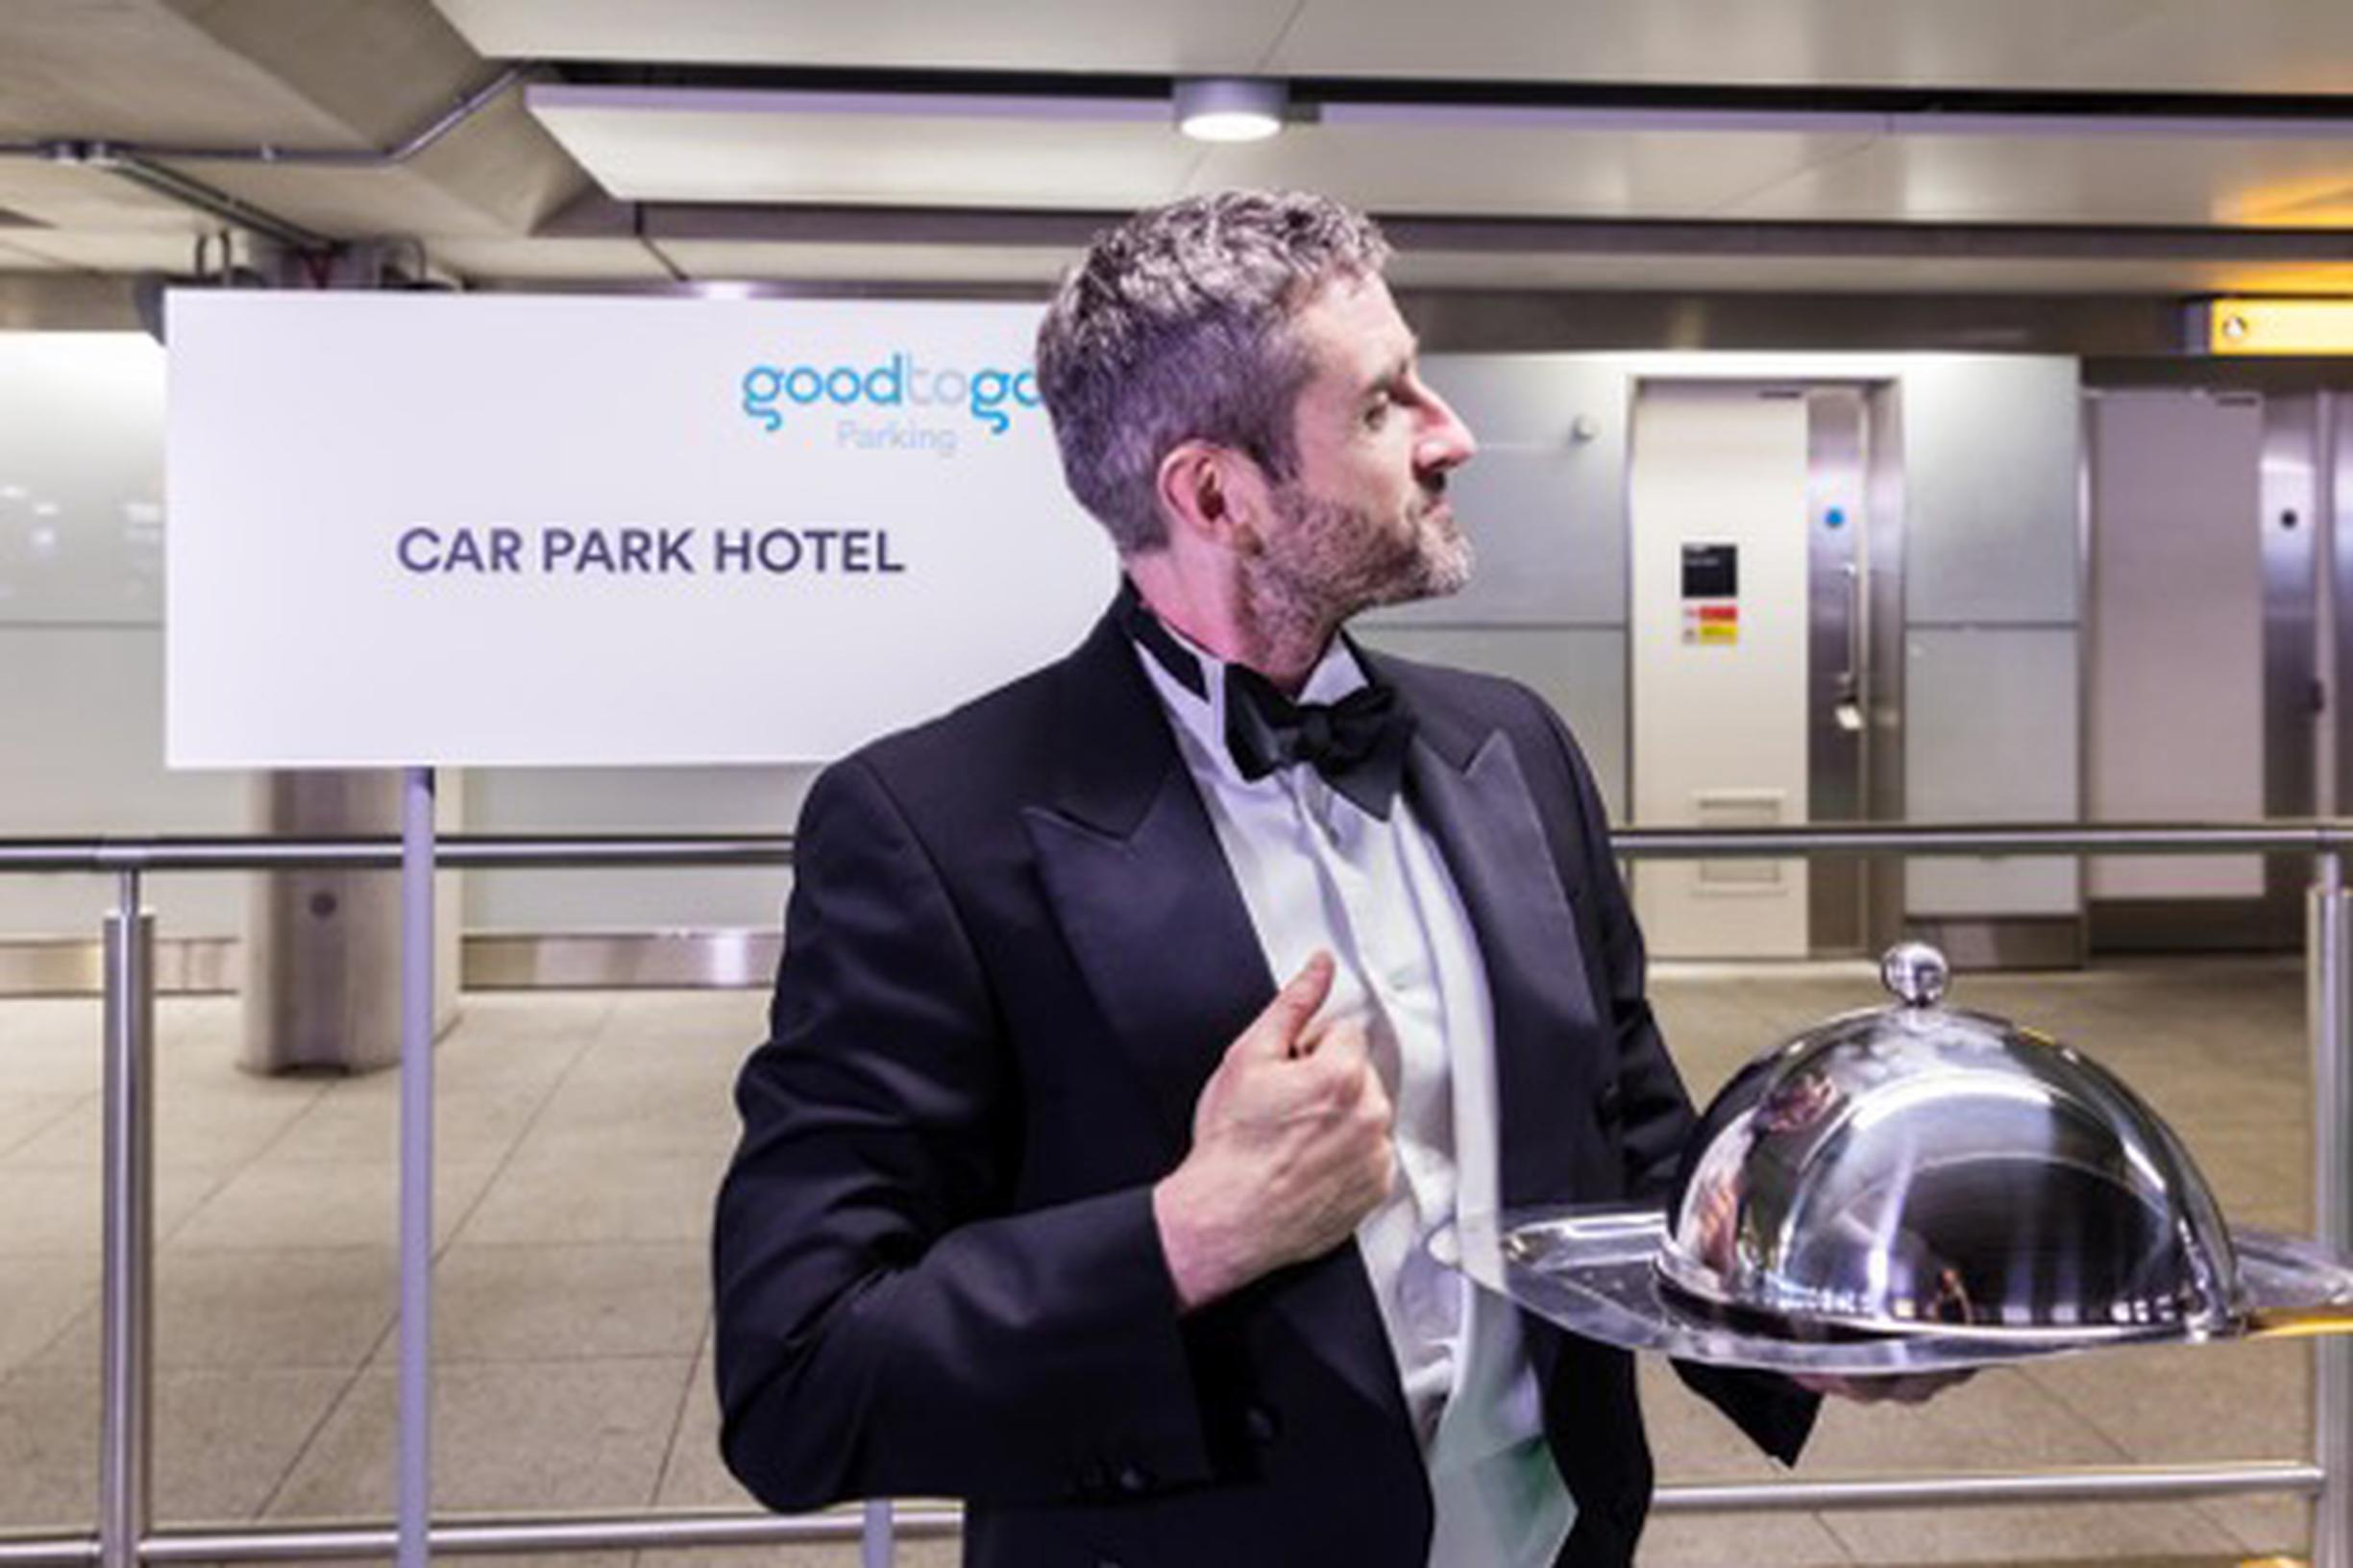 Heathrow unveils its Car Park Hotel